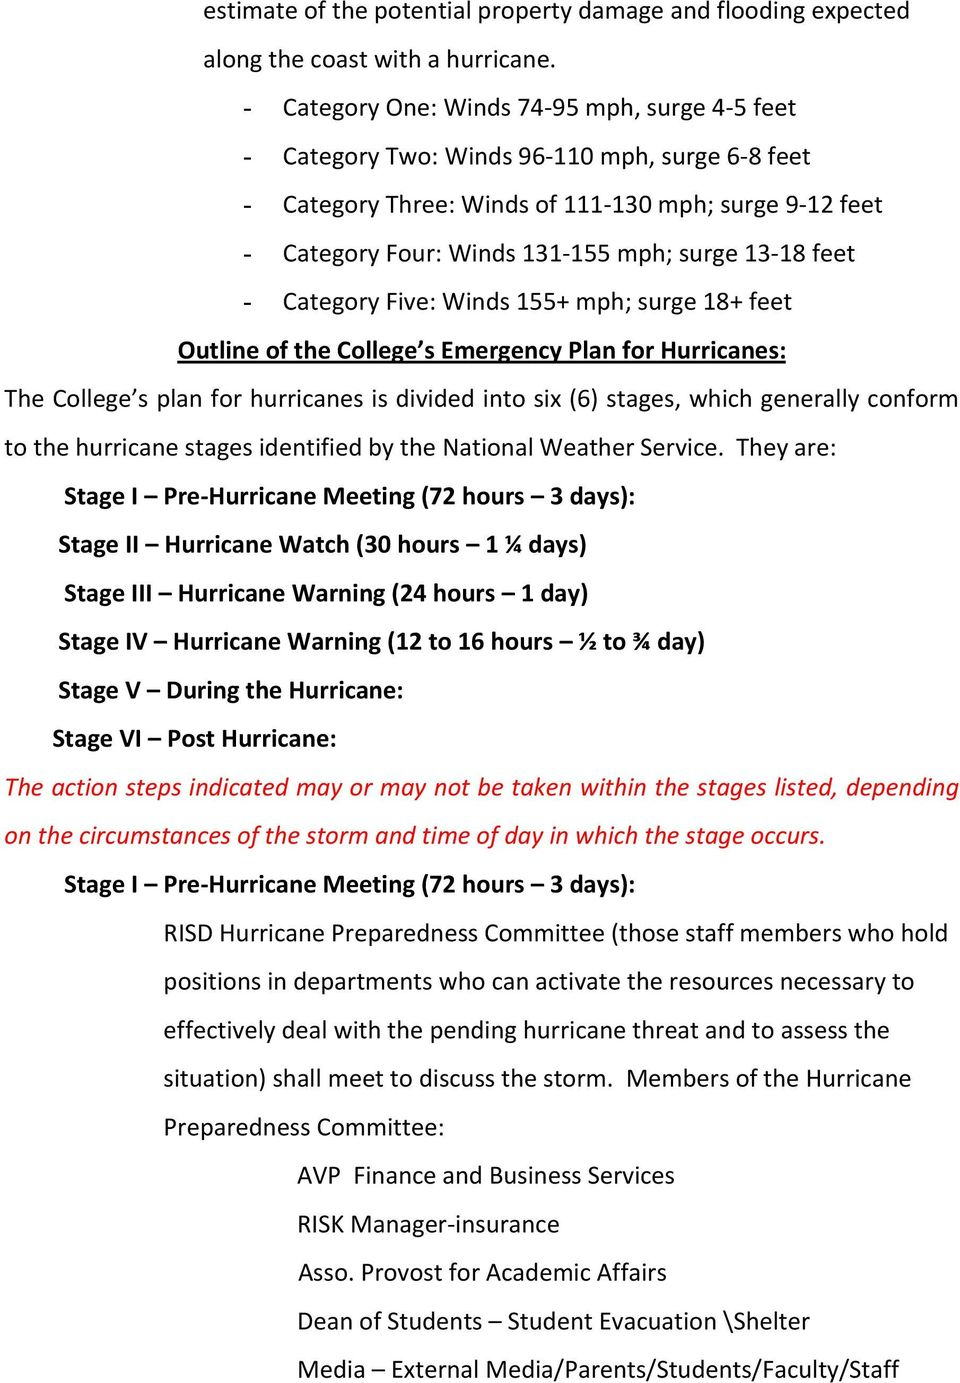 13-18 feet - Category Five: Winds 155+ mph; surge 18+ feet Outline of the College s Emergency Plan for Hurricanes: The College s plan for hurricanes is divided into six (6) stages, which generally